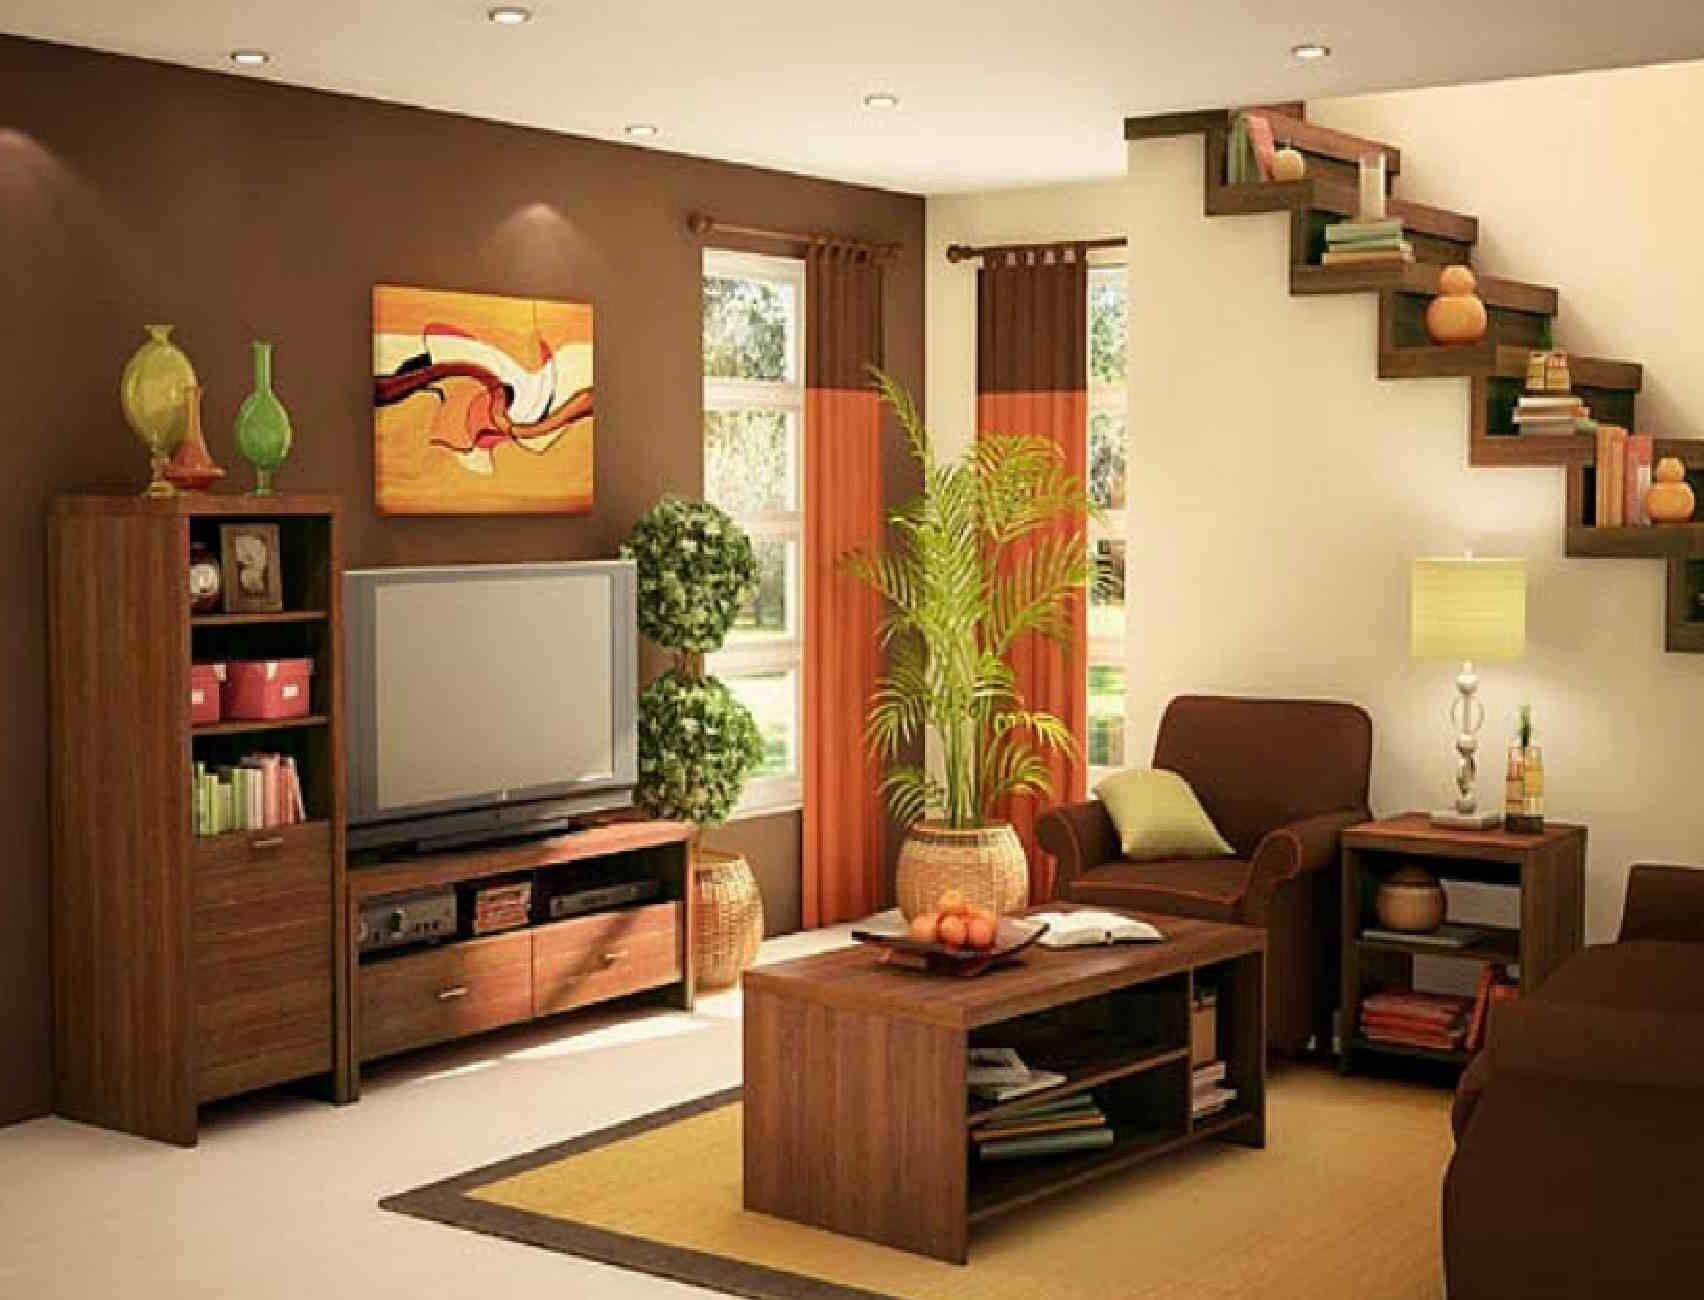 Attractive interior designs for small houses in the philippines source house interior design sisterspd